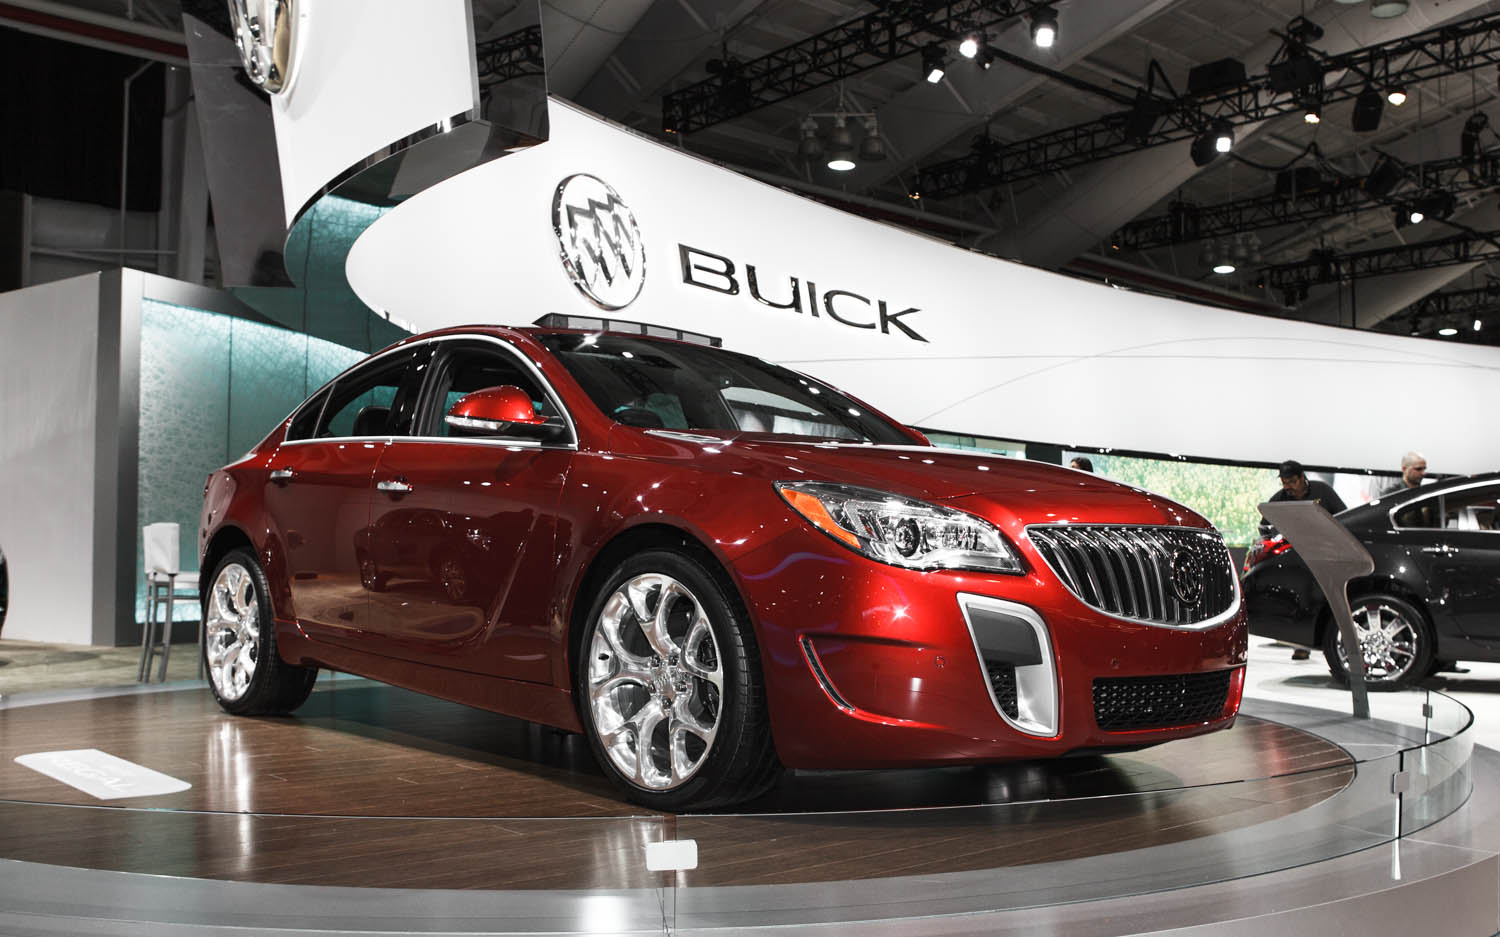 Thread Of The Day Should Buick Offer The Regal Turbo And Regal Gs